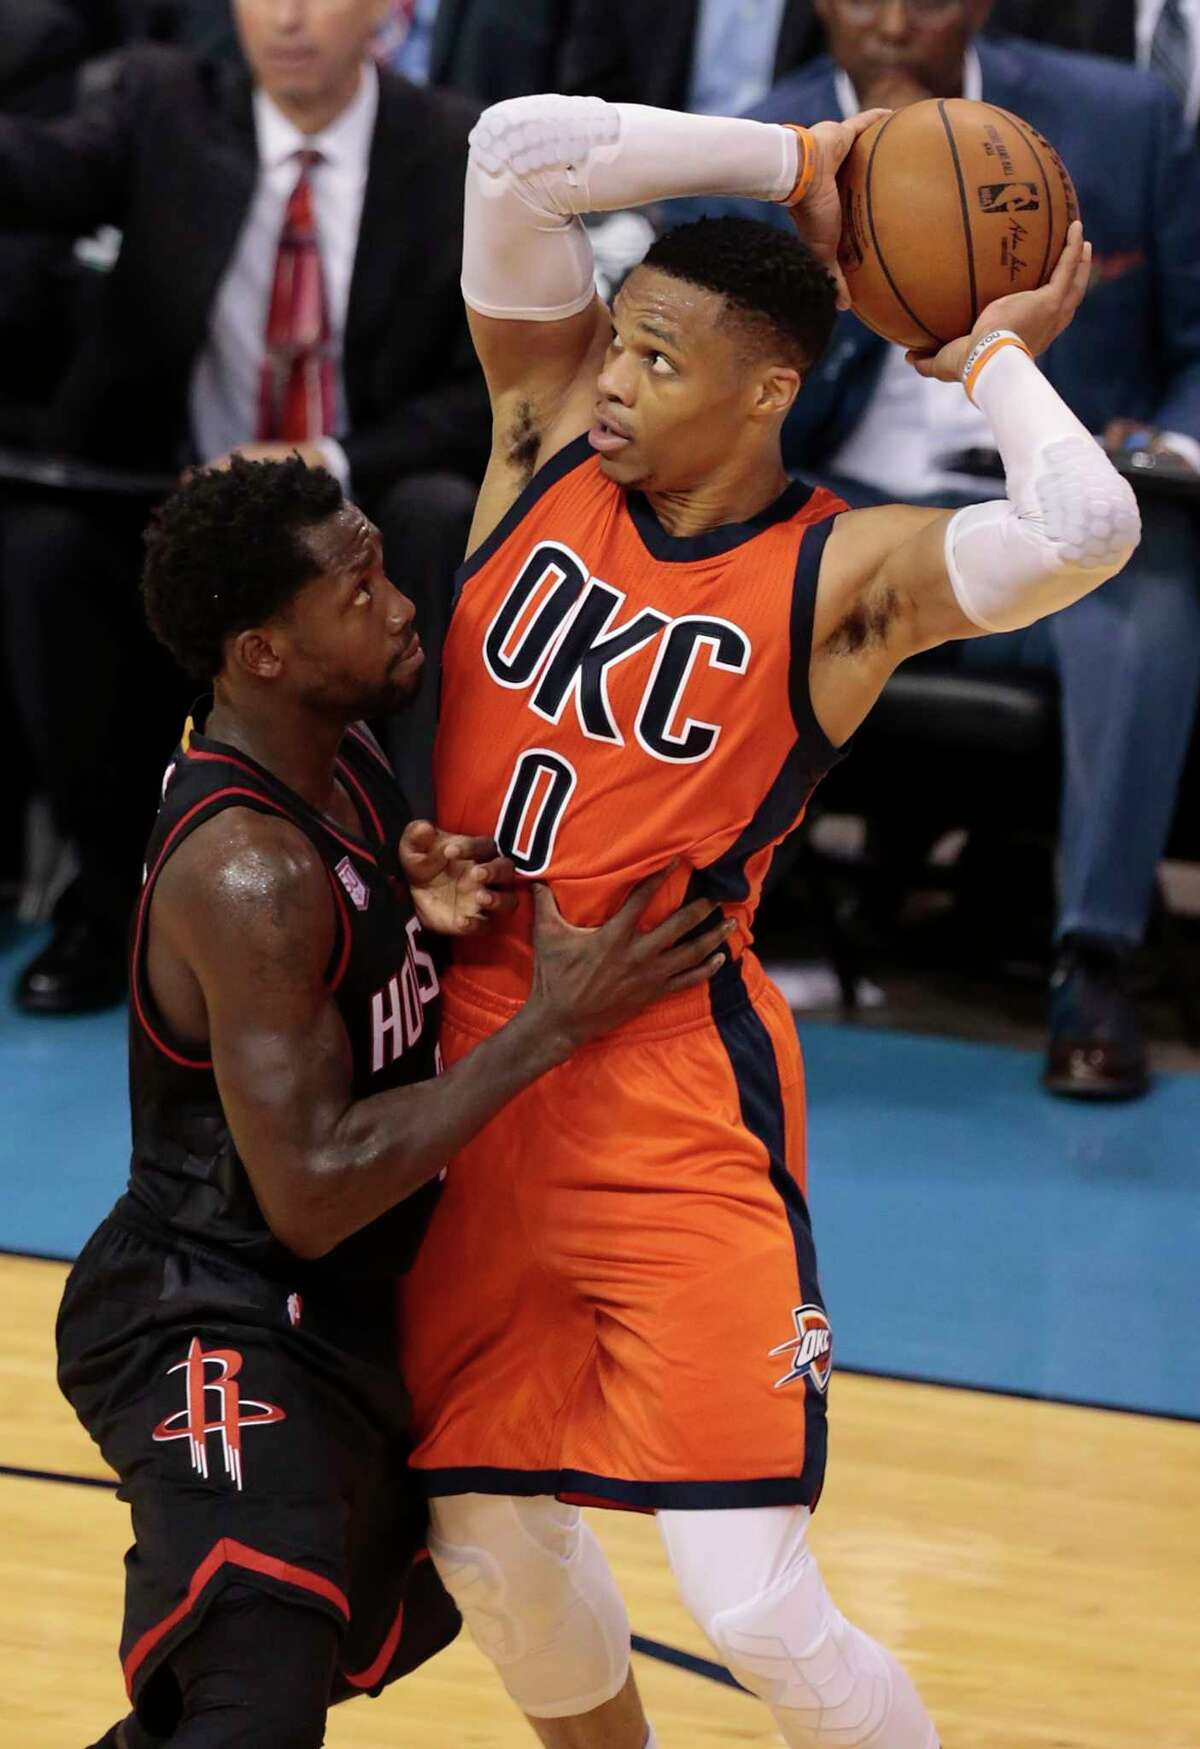 Houston Rockets guard Patrick Beverley (2) plays defense on Oklahoma City Thunder guard Russell Westbrook (0) during the fourth quarter of Game 4 of the NBA Western Conference first-round playoff series at Chesapeake Energy Arena on Sunday, April 23, 2017, in Oklahoma City. The Rockets beat the Thunder 113-109, to take a 3-1 lead in the best-of-seven series. ( Brett Coomer / Houston Chronicle )